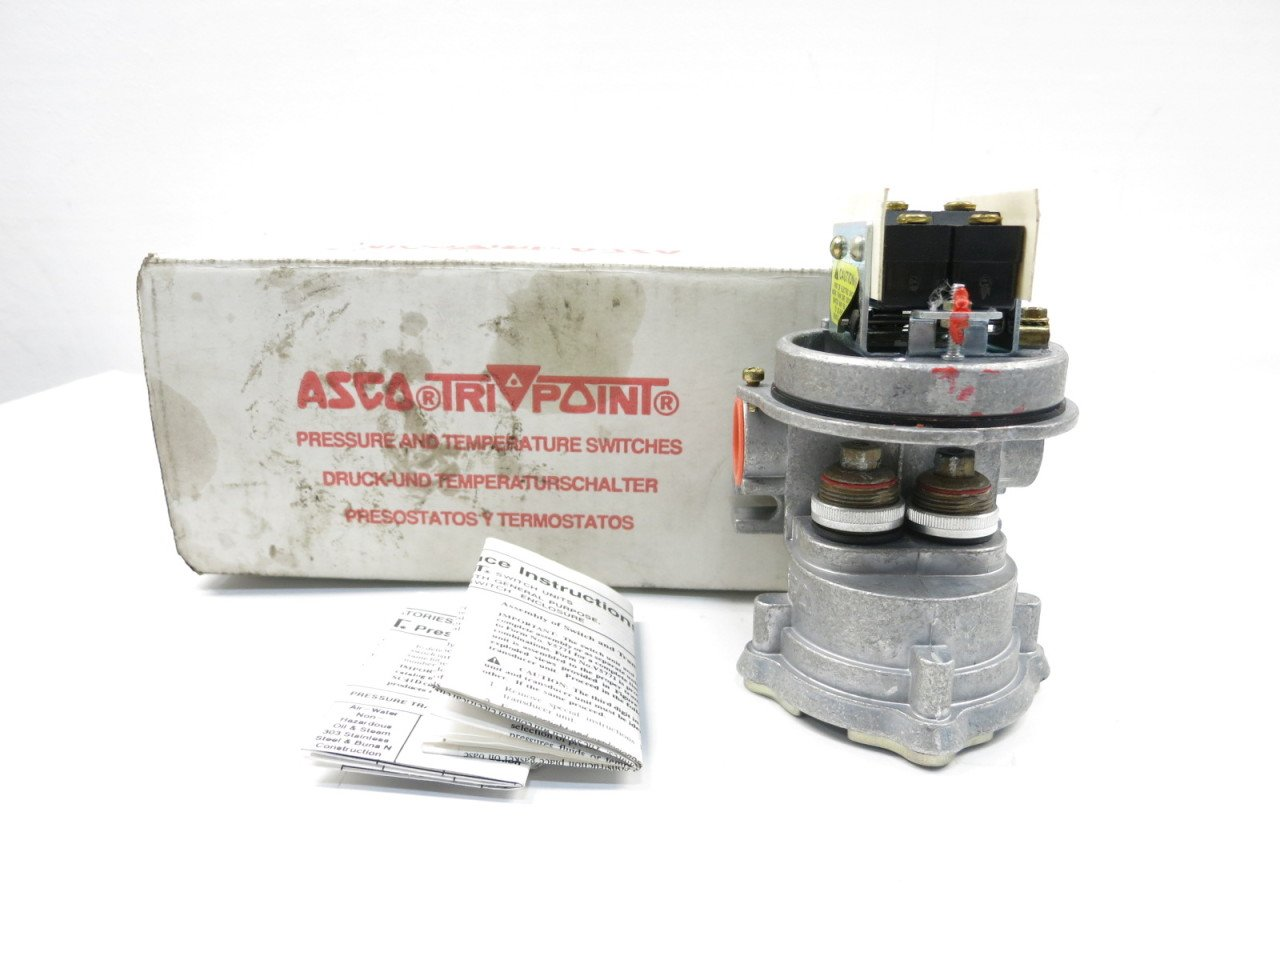 Amazon.com: ASCO TYPE SA TRI-POINT ADJUSTABLE DEADBAND D.P.D.T. PRESSURE SWITCH D600228: Industrial & Scientific